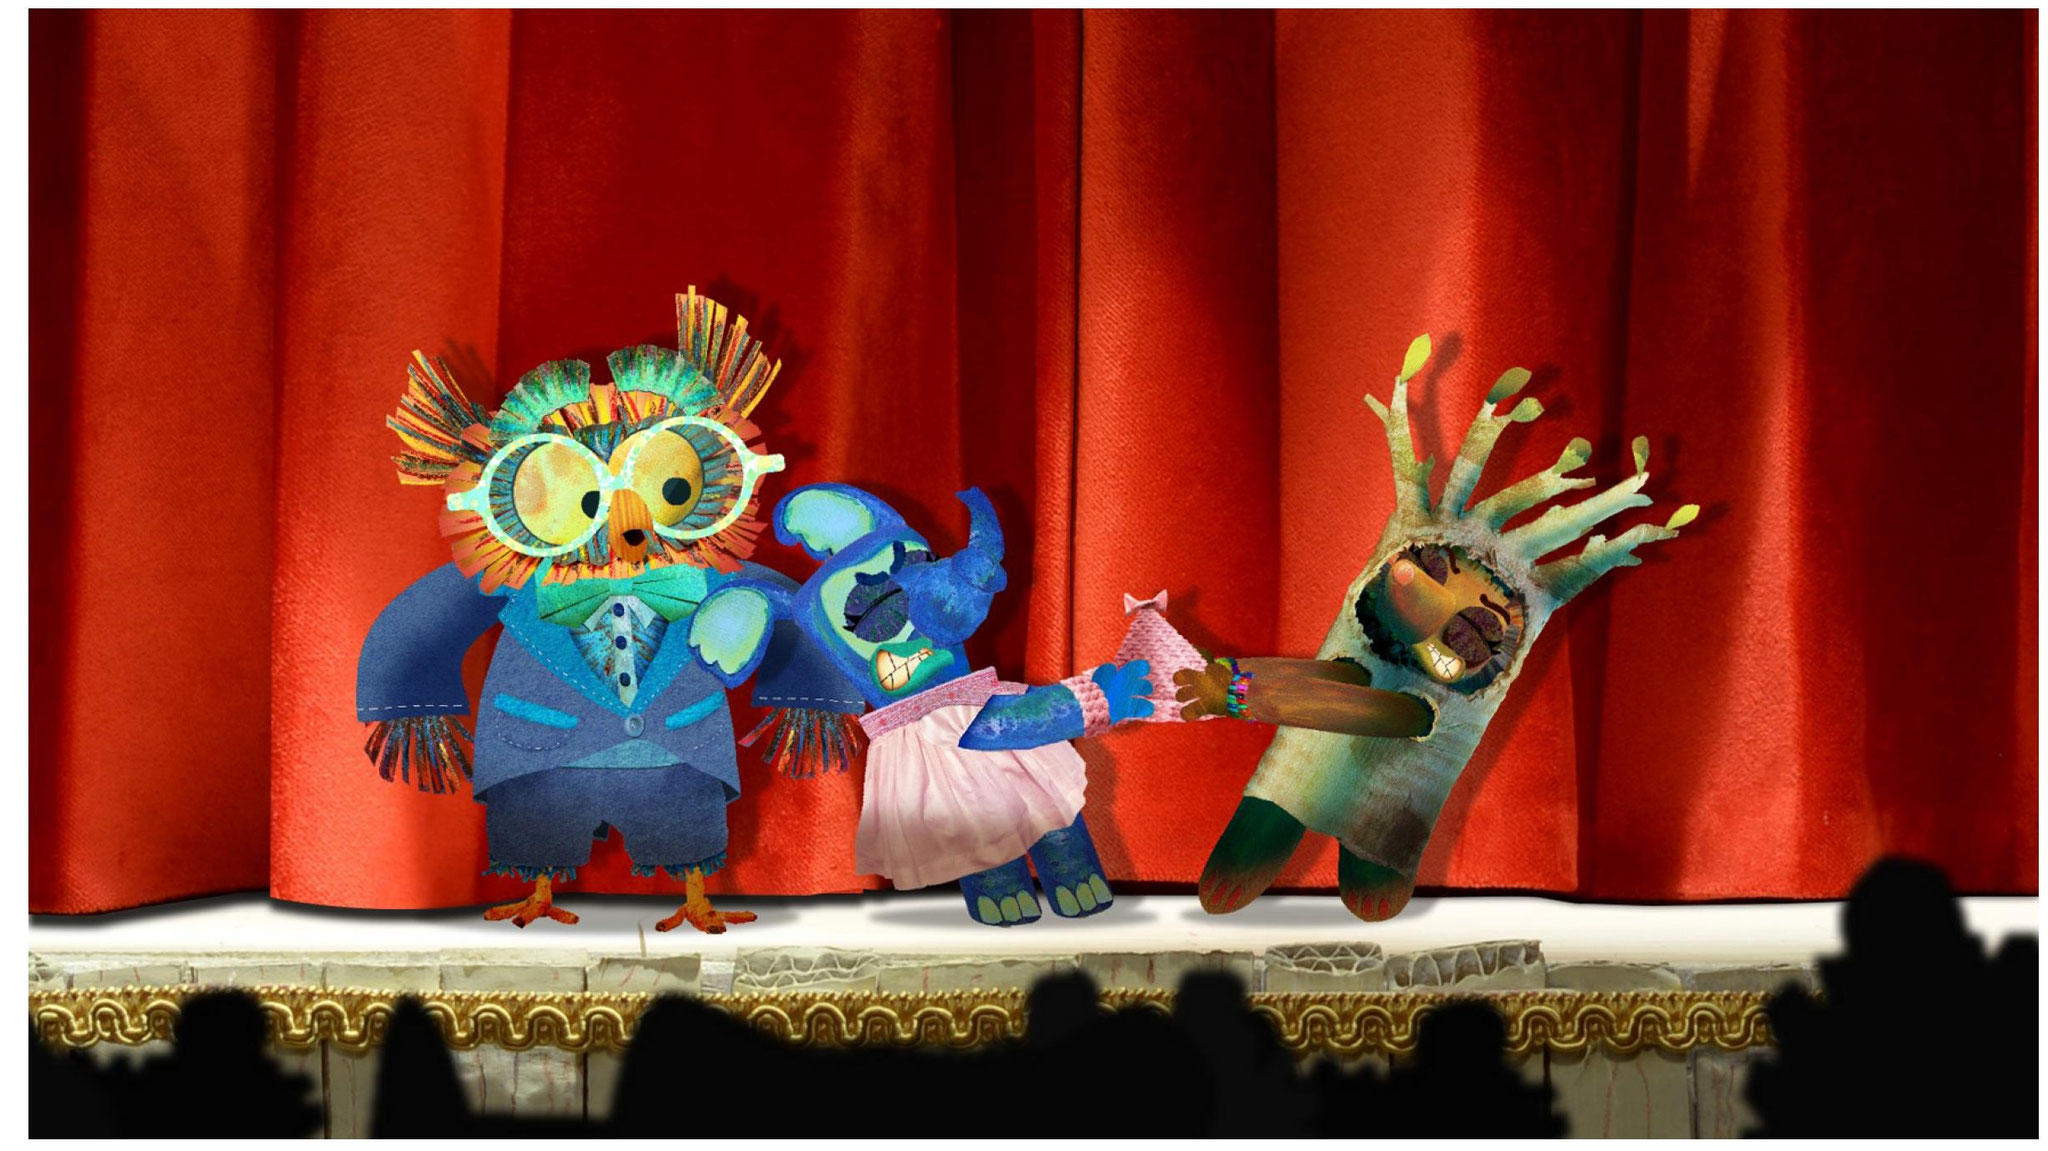 Le spectacle de maternelle / Loïc Bruyère / France/ 2019/ Animation/ 08'00